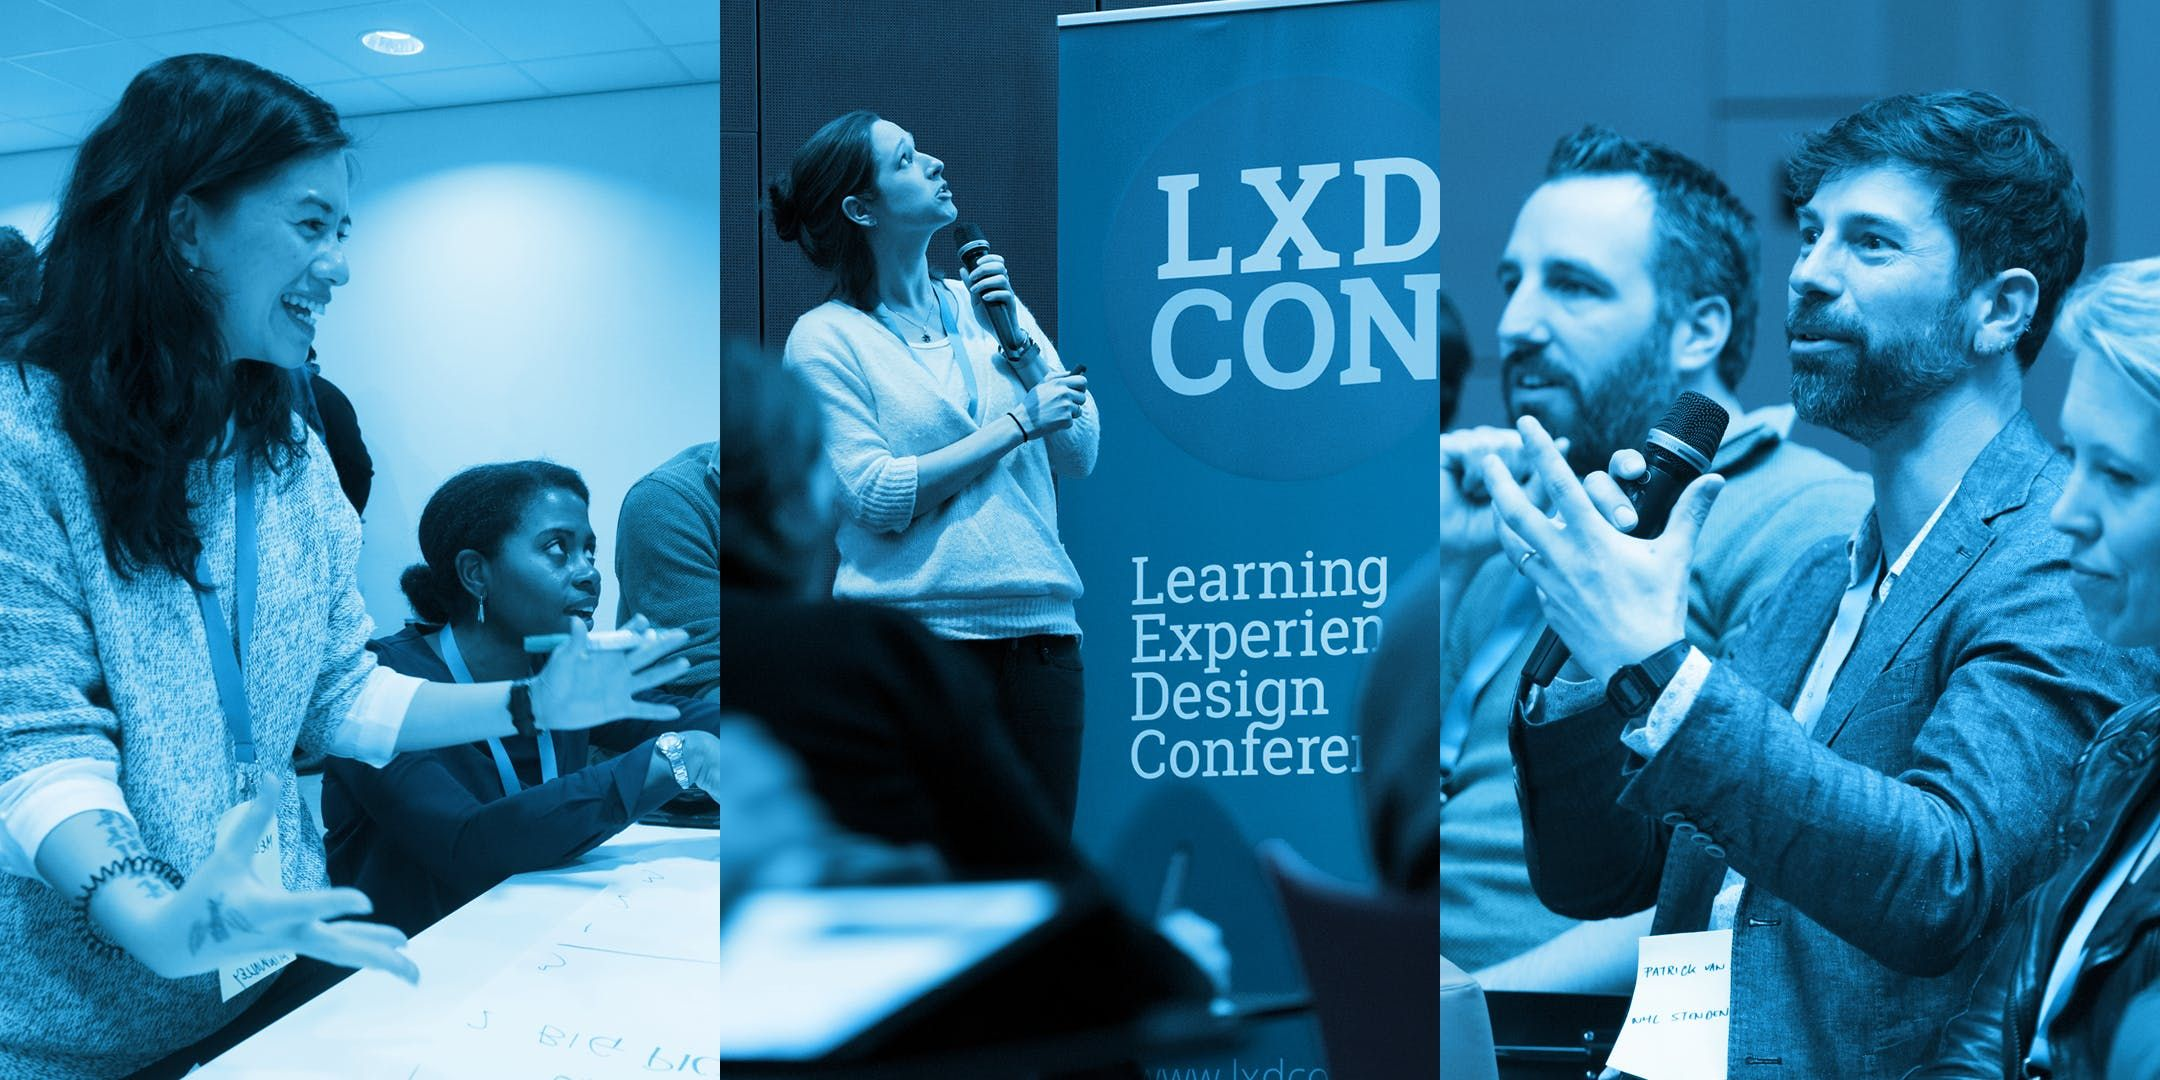 LXDCON 2019 - The 4th Annual Learning Experience Design Conference